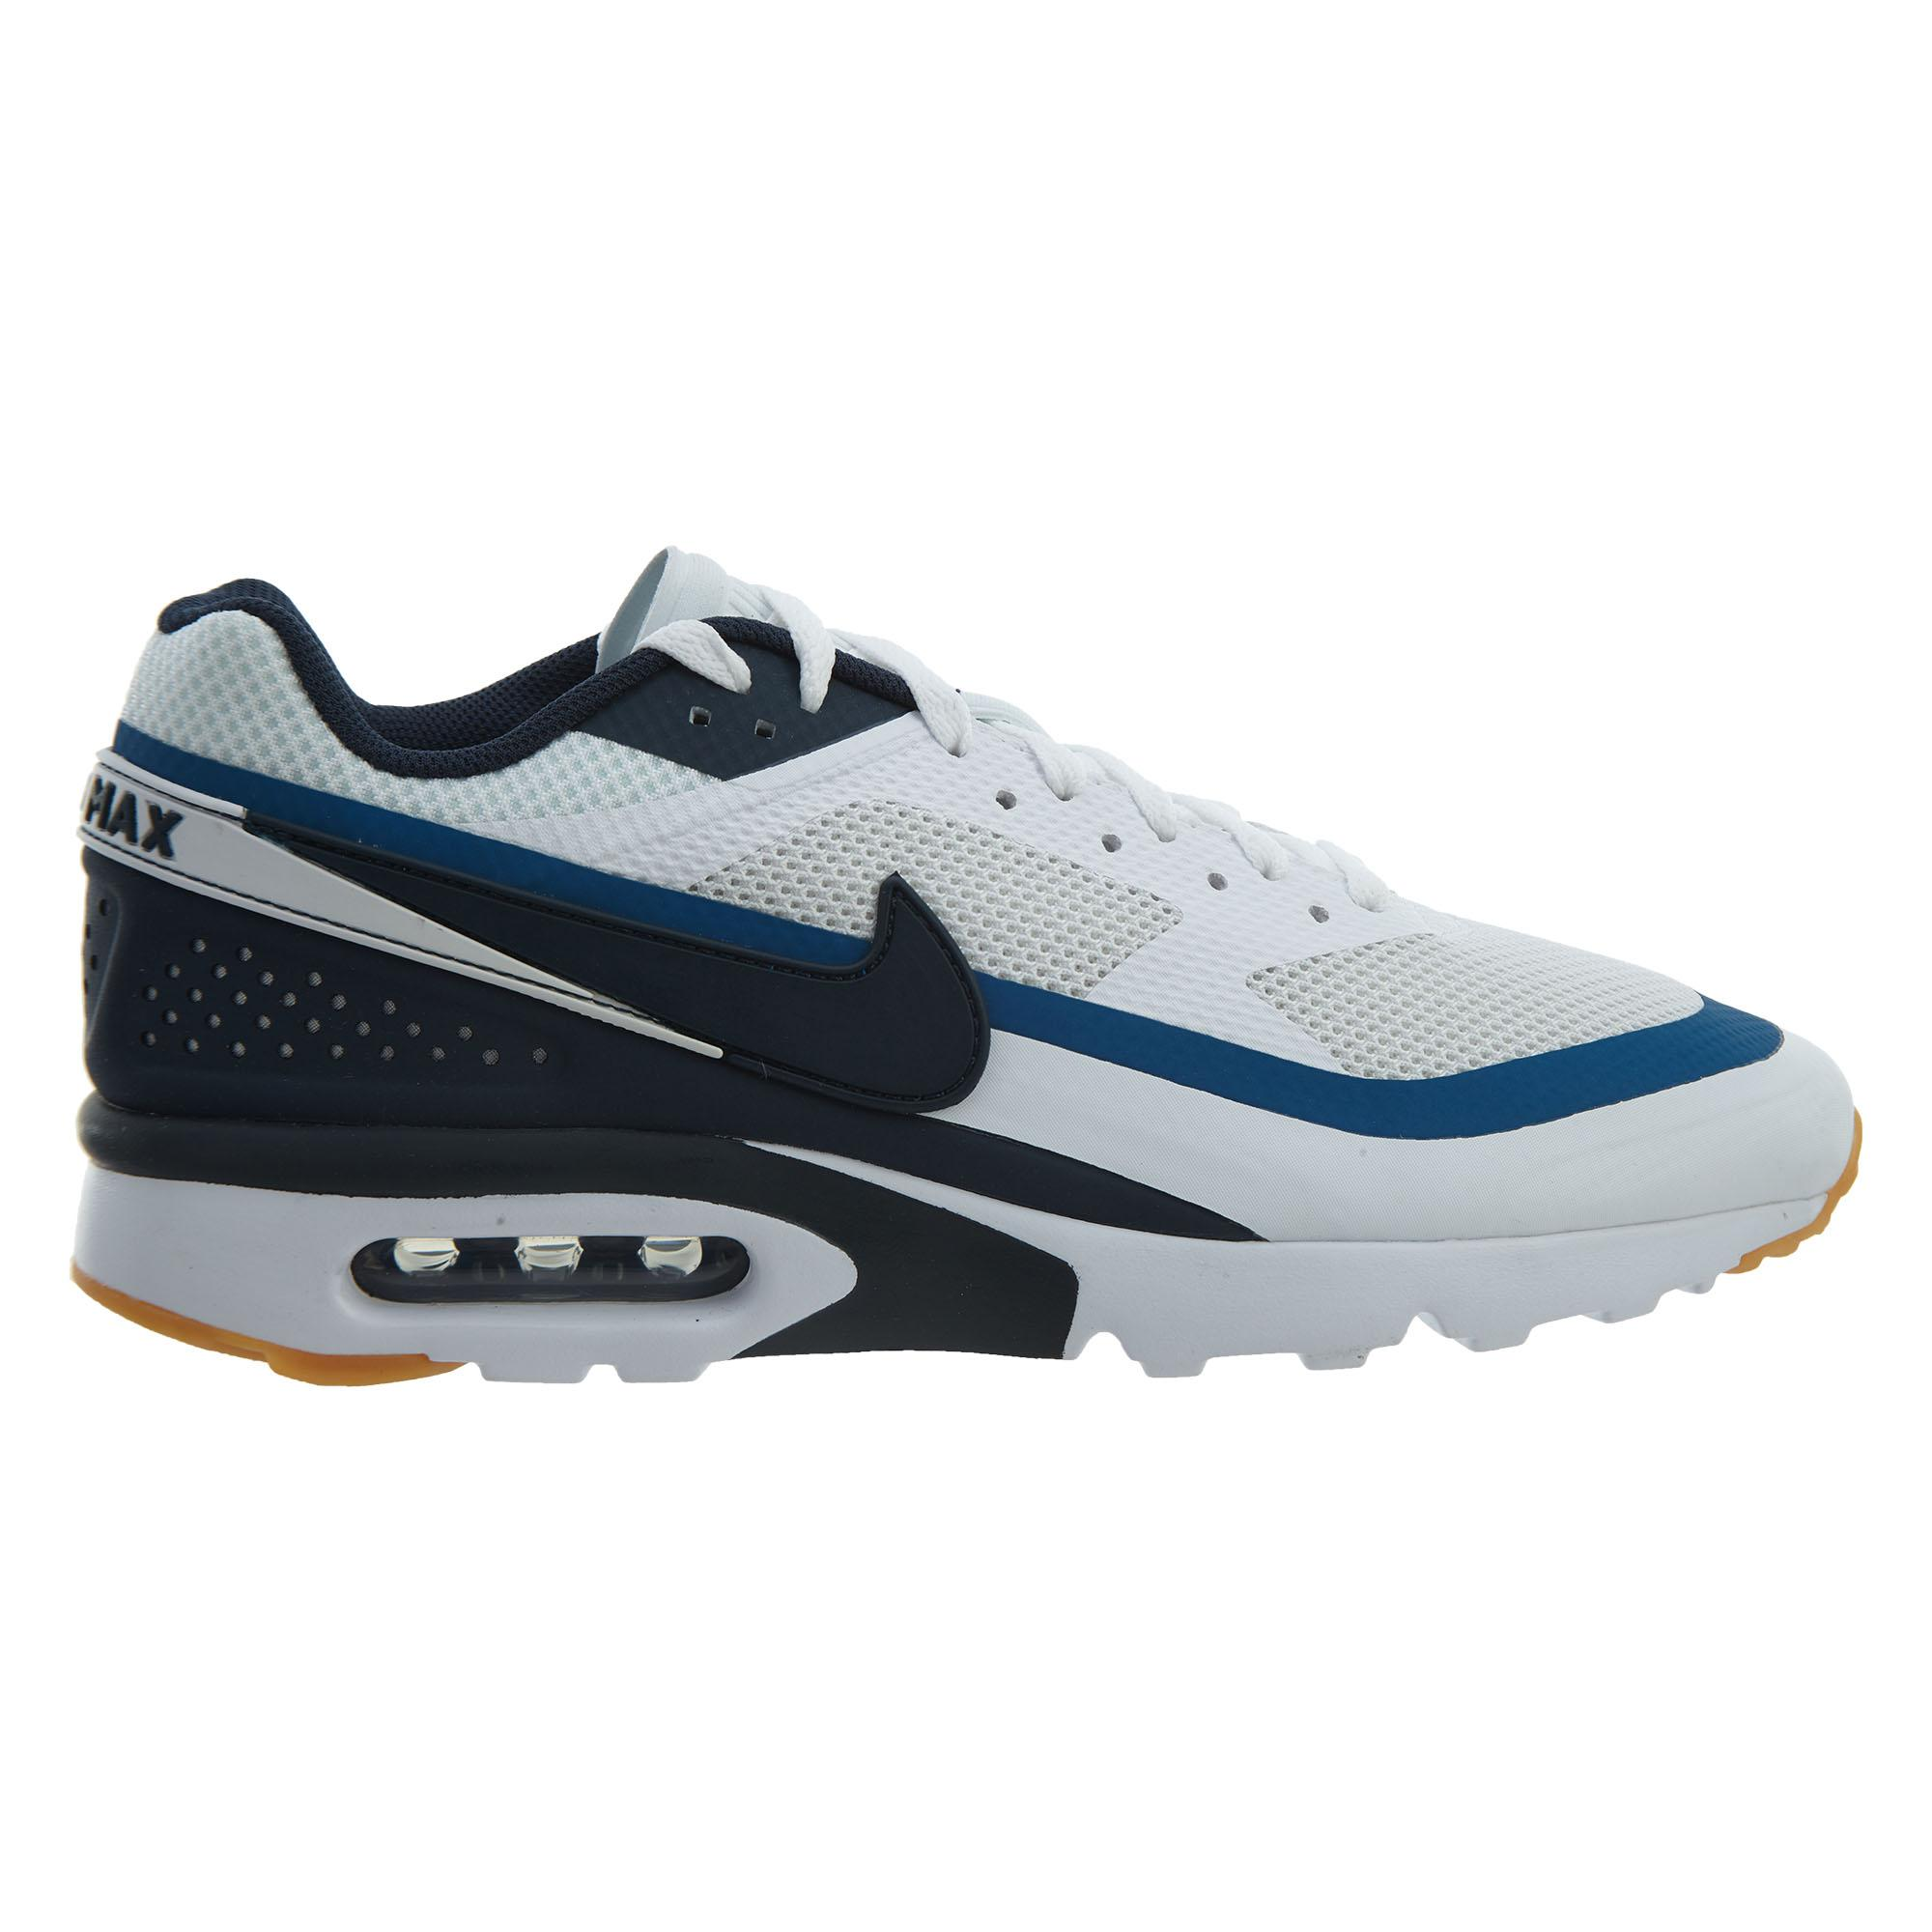 Nike Air Max BW Ultra Schuhe white armory navy industrial blue